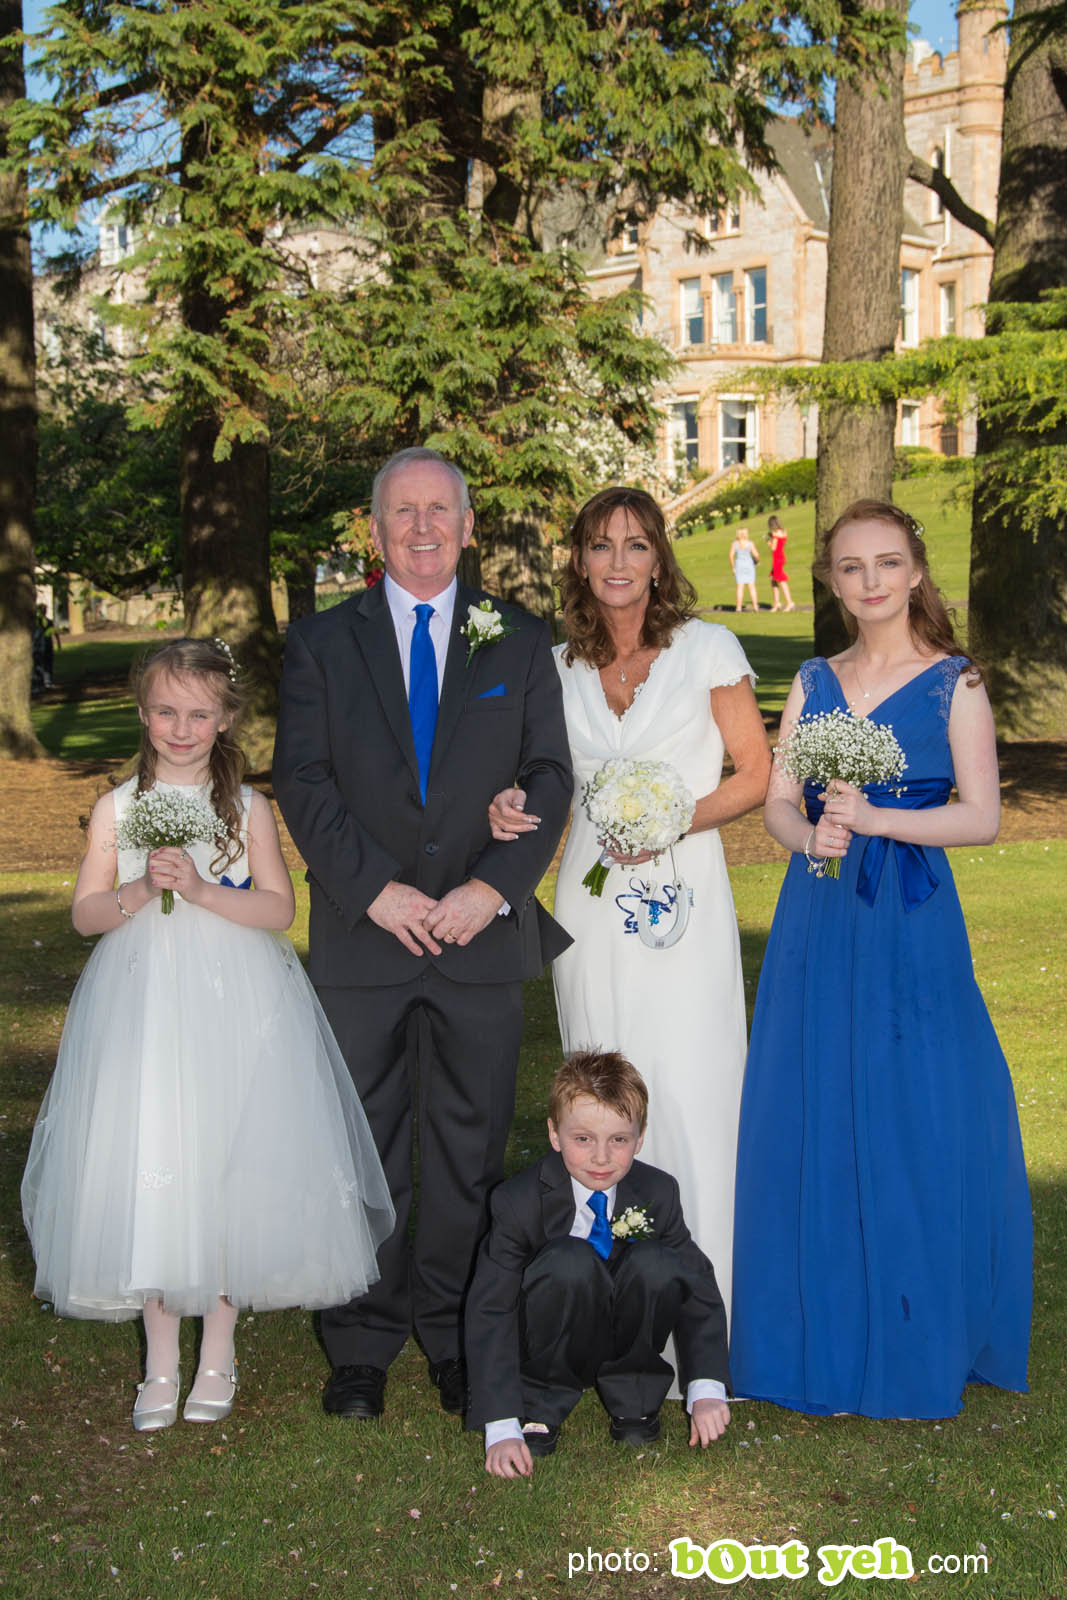 Wedding Photographers Belfast photograph 5819 - Bout Yeh wedding photography and video services, Northern Ireland.